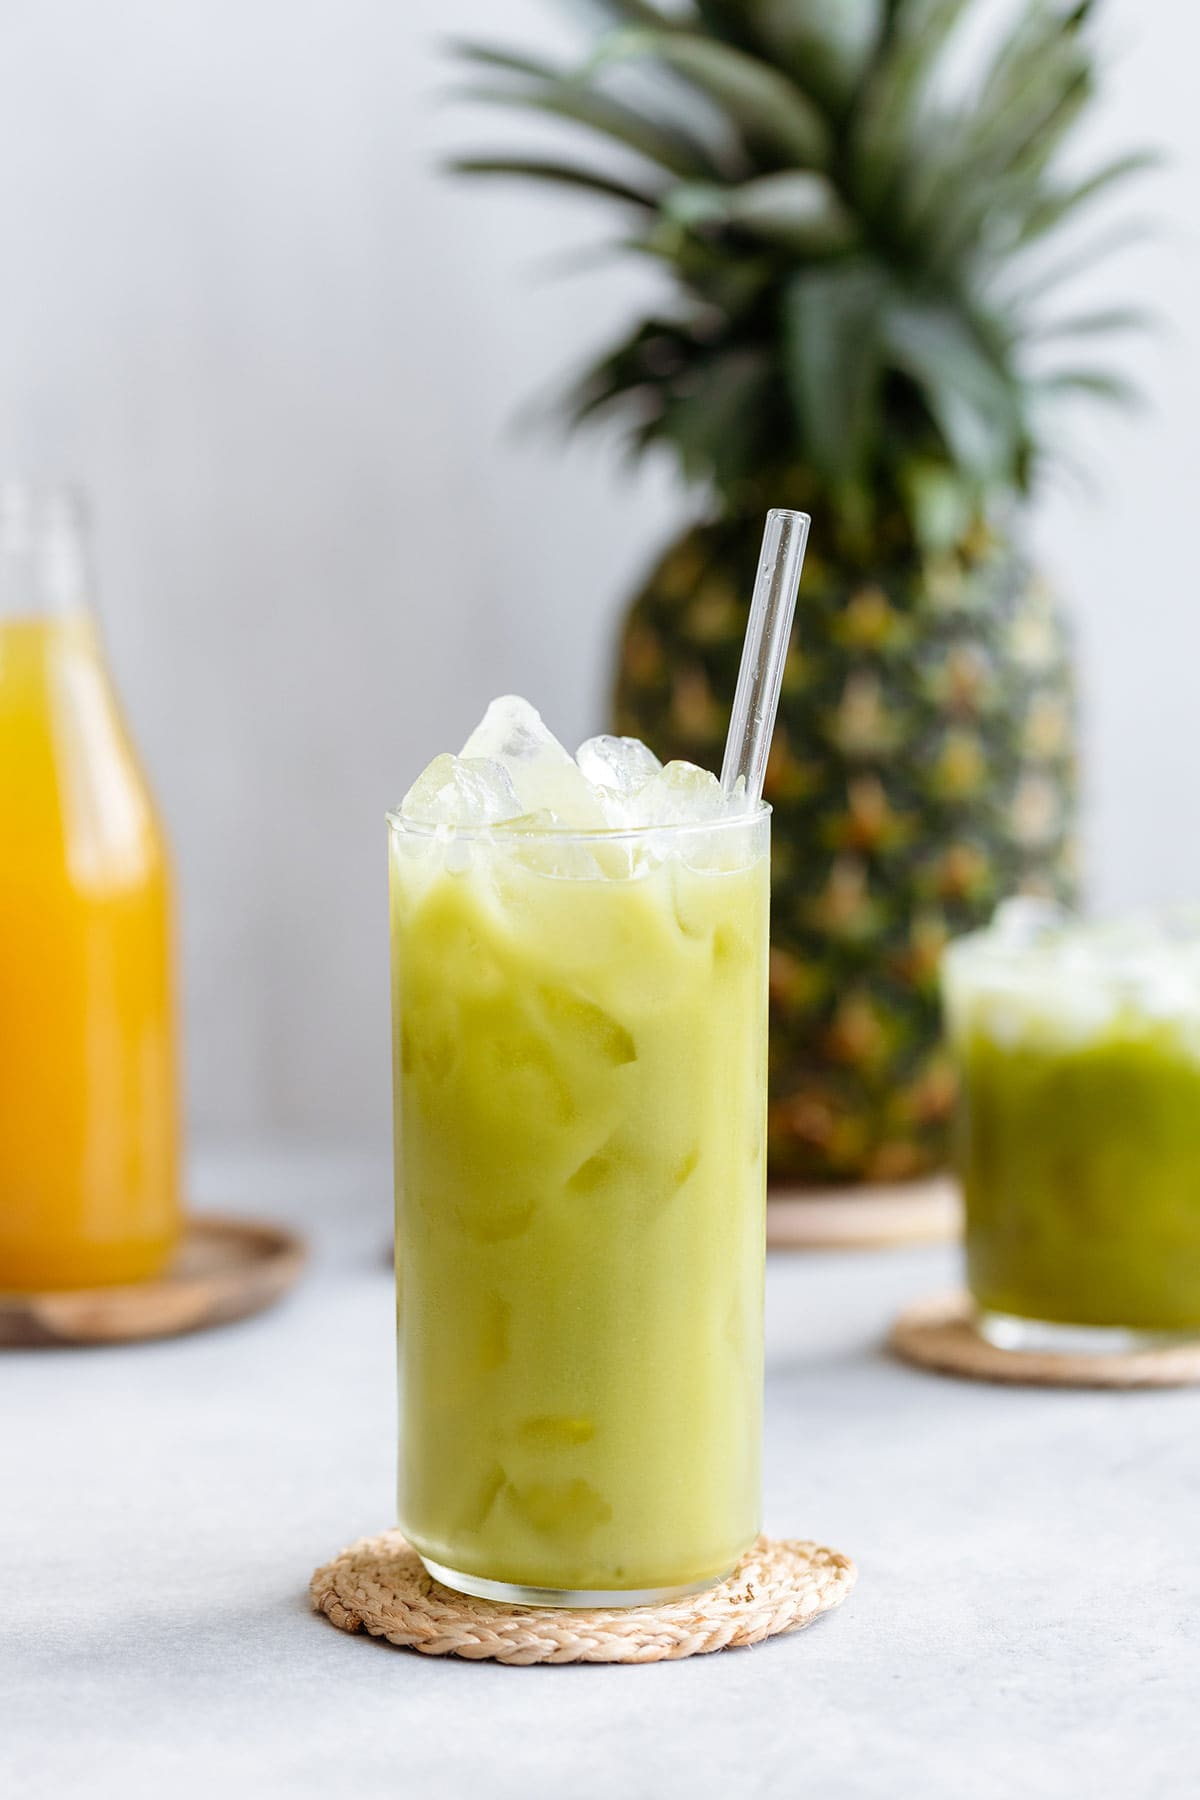 Pineapple drink in a tall glass served over ice and a glass straw.